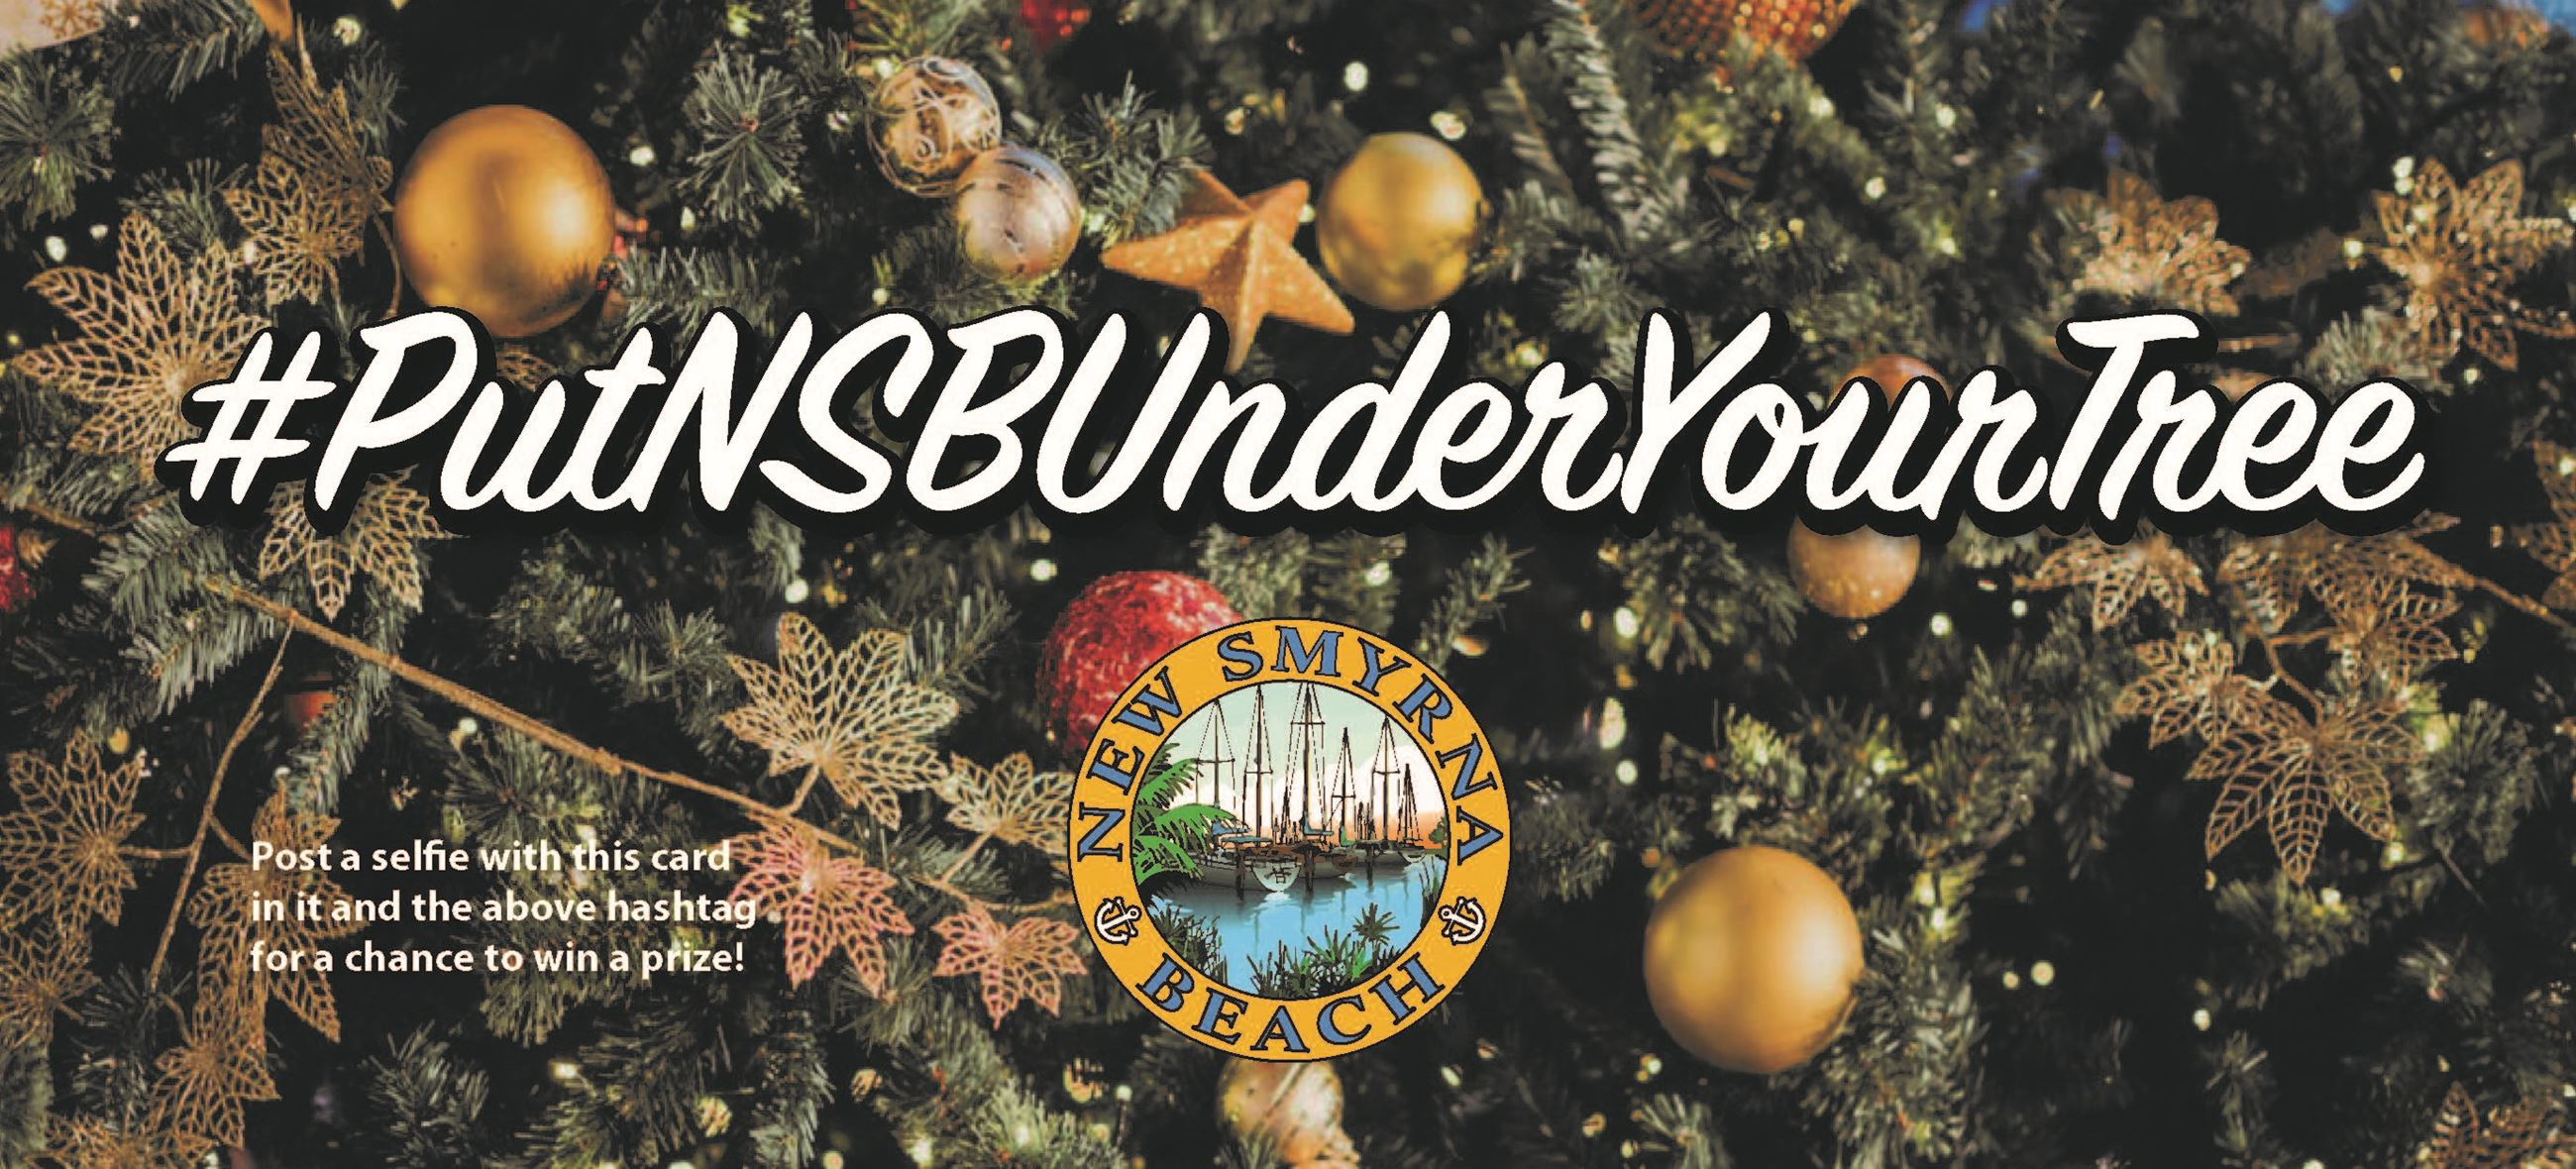 Graphic banner for #PutNSBUnderYourTree social media campaign depicting the hashtag in large white l